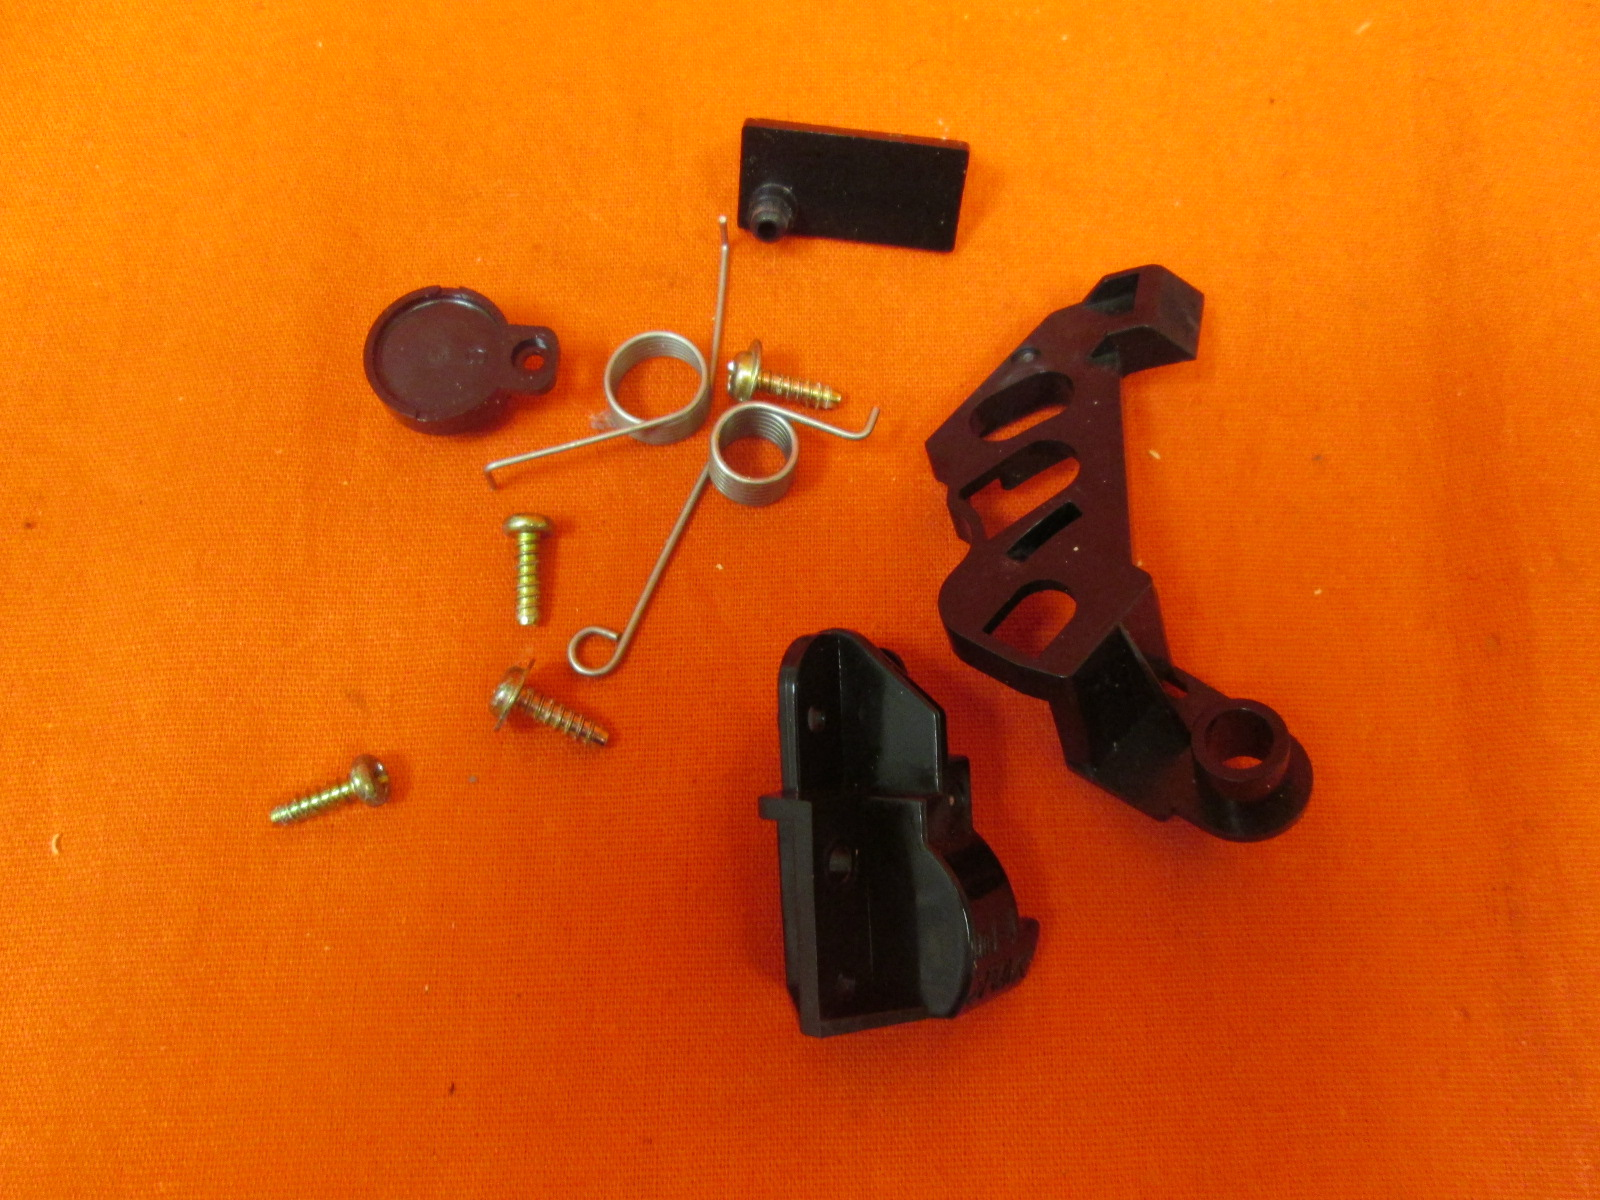 Replacement Nintendo OEM Eject Gears Springs Small Parts And Screws